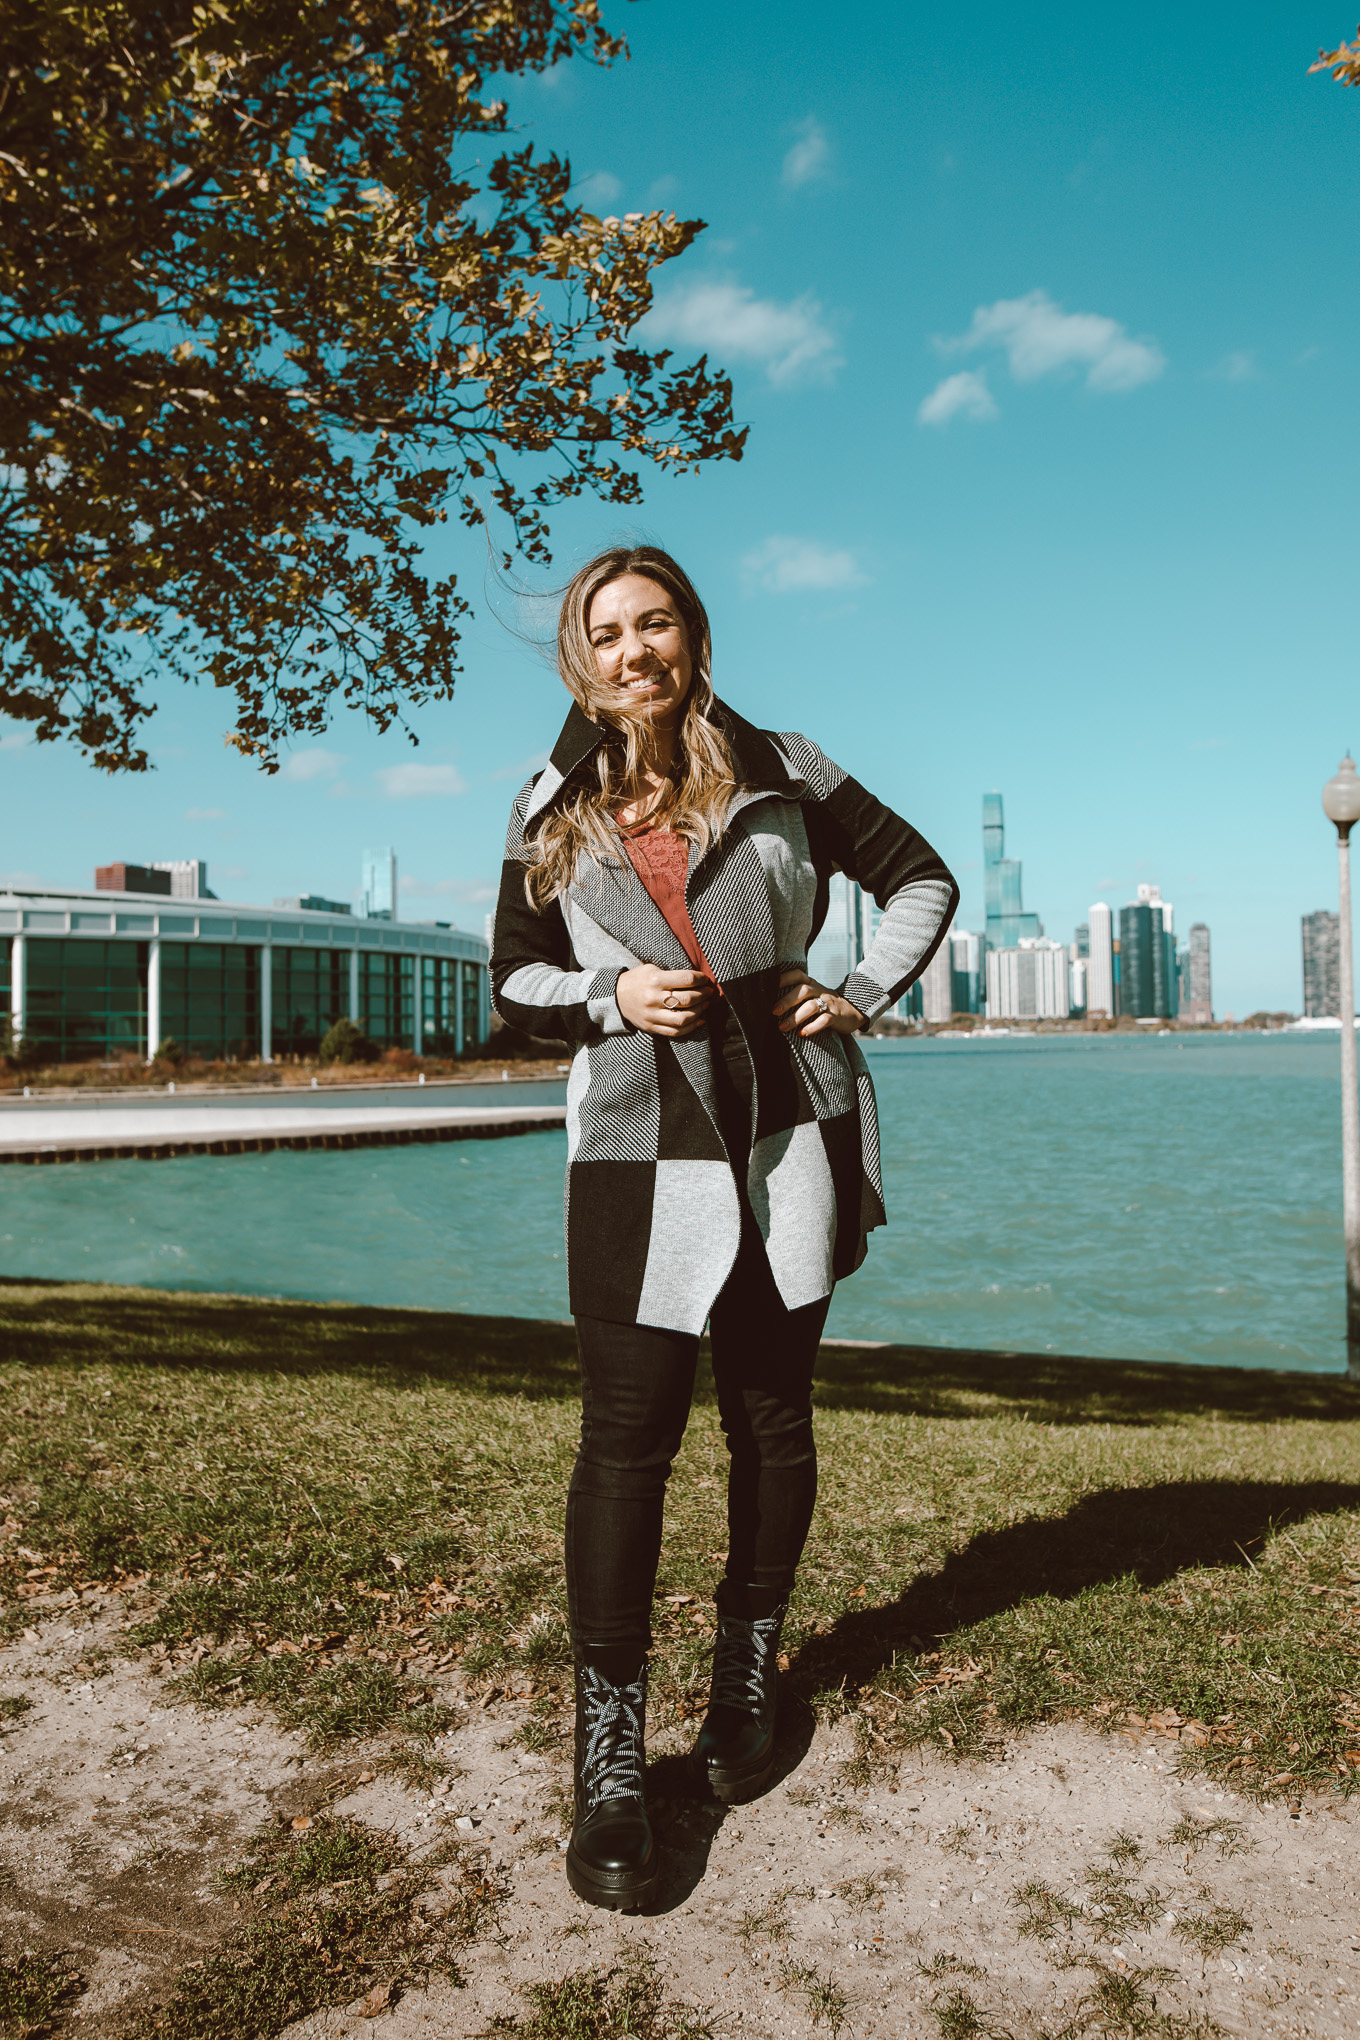 Cozy Sweater by popular Chicago fashion blog, Glass of Glam: image of a woman standing next to a lake with the Chicago skyline behind her and wearing a Amazon MEROKEETY Womens Plaid Long Sleeve Lapel Collar Drape Knit Cardigan, Abercrombie and Fitch lace cami, Ann Taylor Petite Sculpting Pocket High Rise Skinny Jeans In Jet Black Wash, and M. Gemi THE ETTA quilted combat boots.